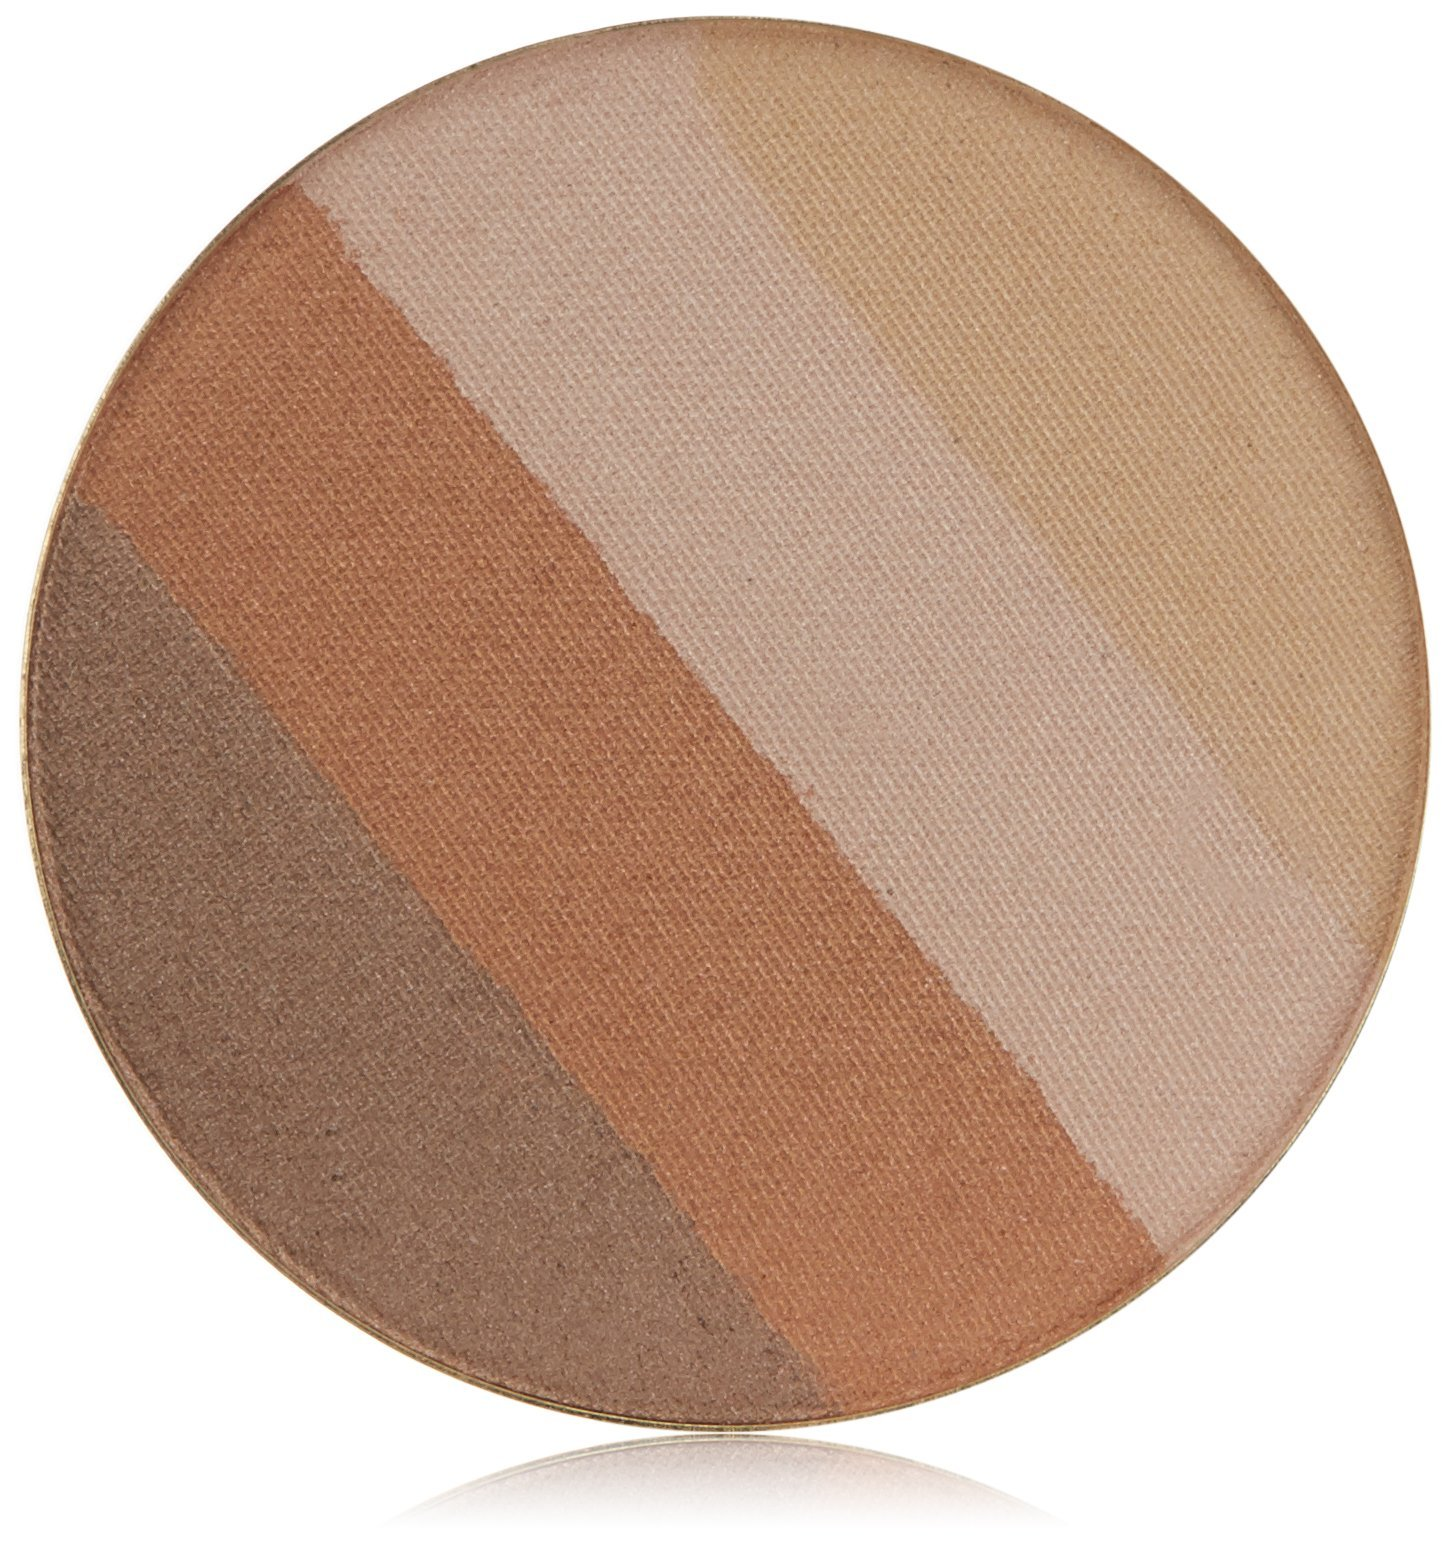 jane iredale Bronzer Refill, Moonglow Golden, 0.3 oz. by jane iredale